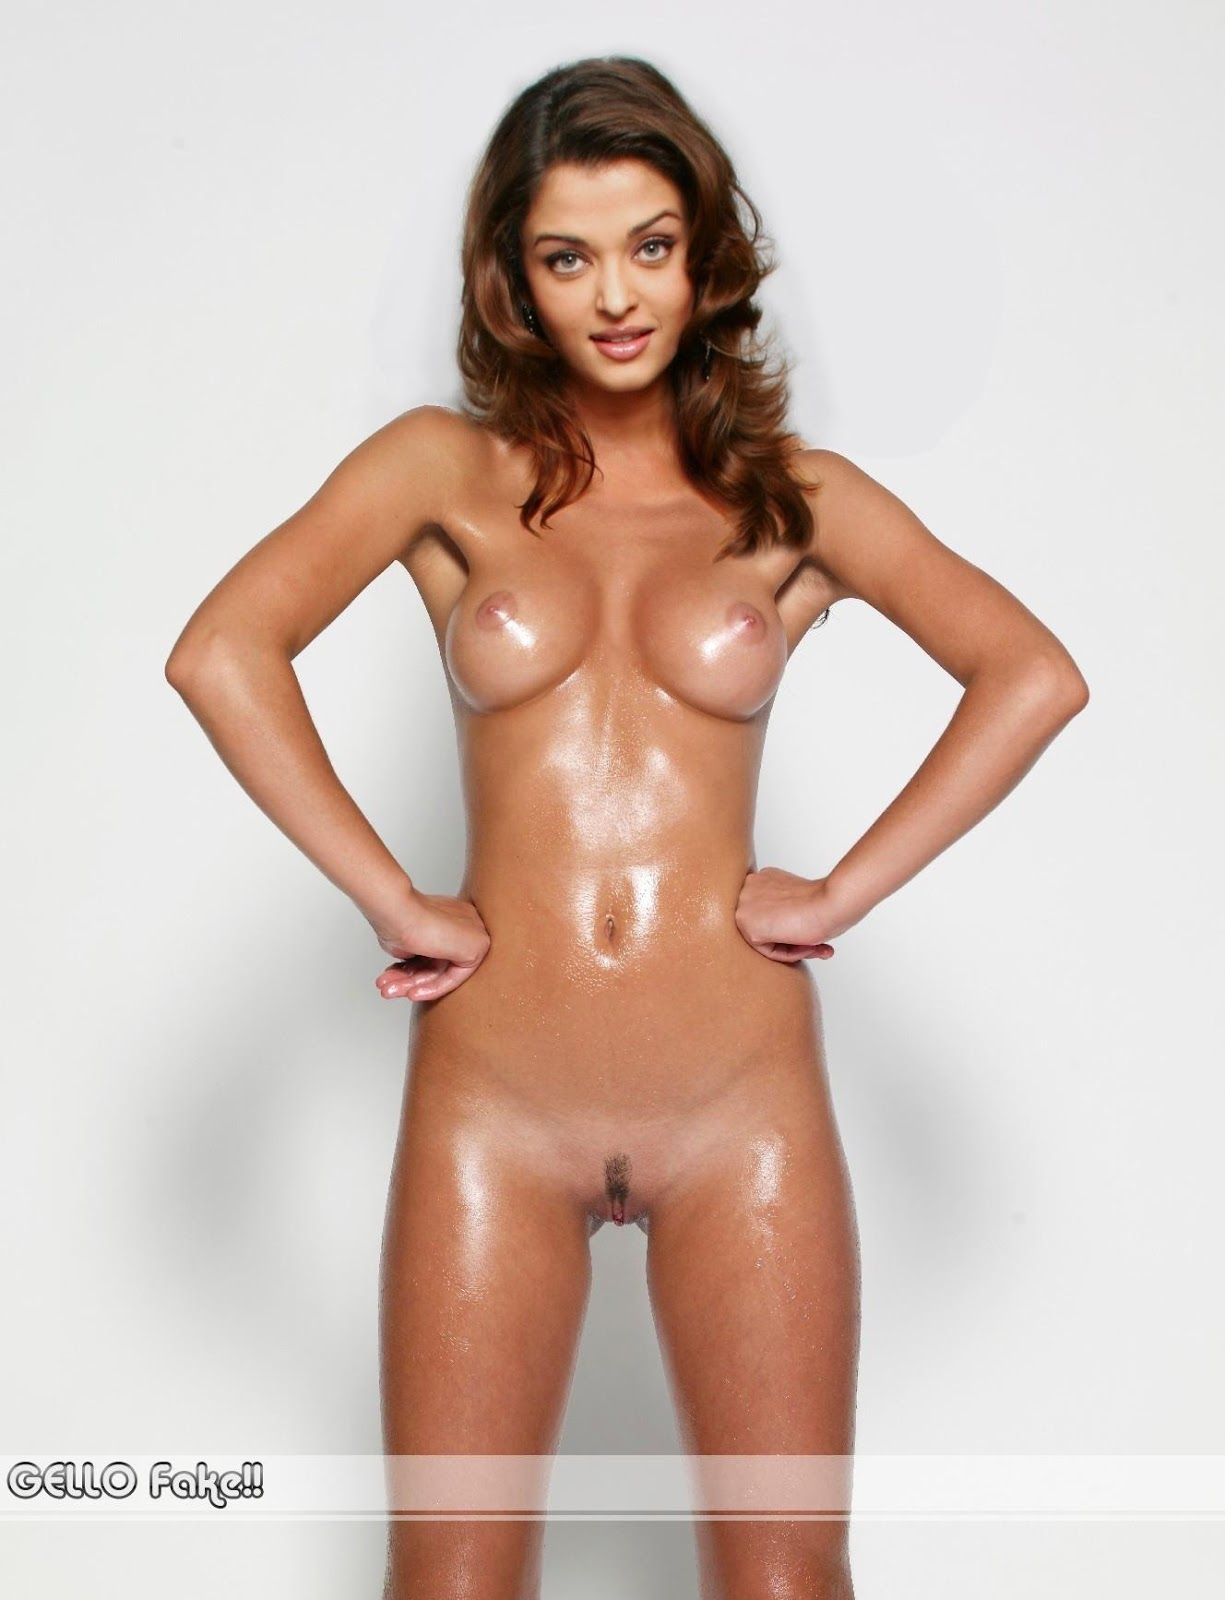 Remarkable, rather Best body in the world nude opinion you